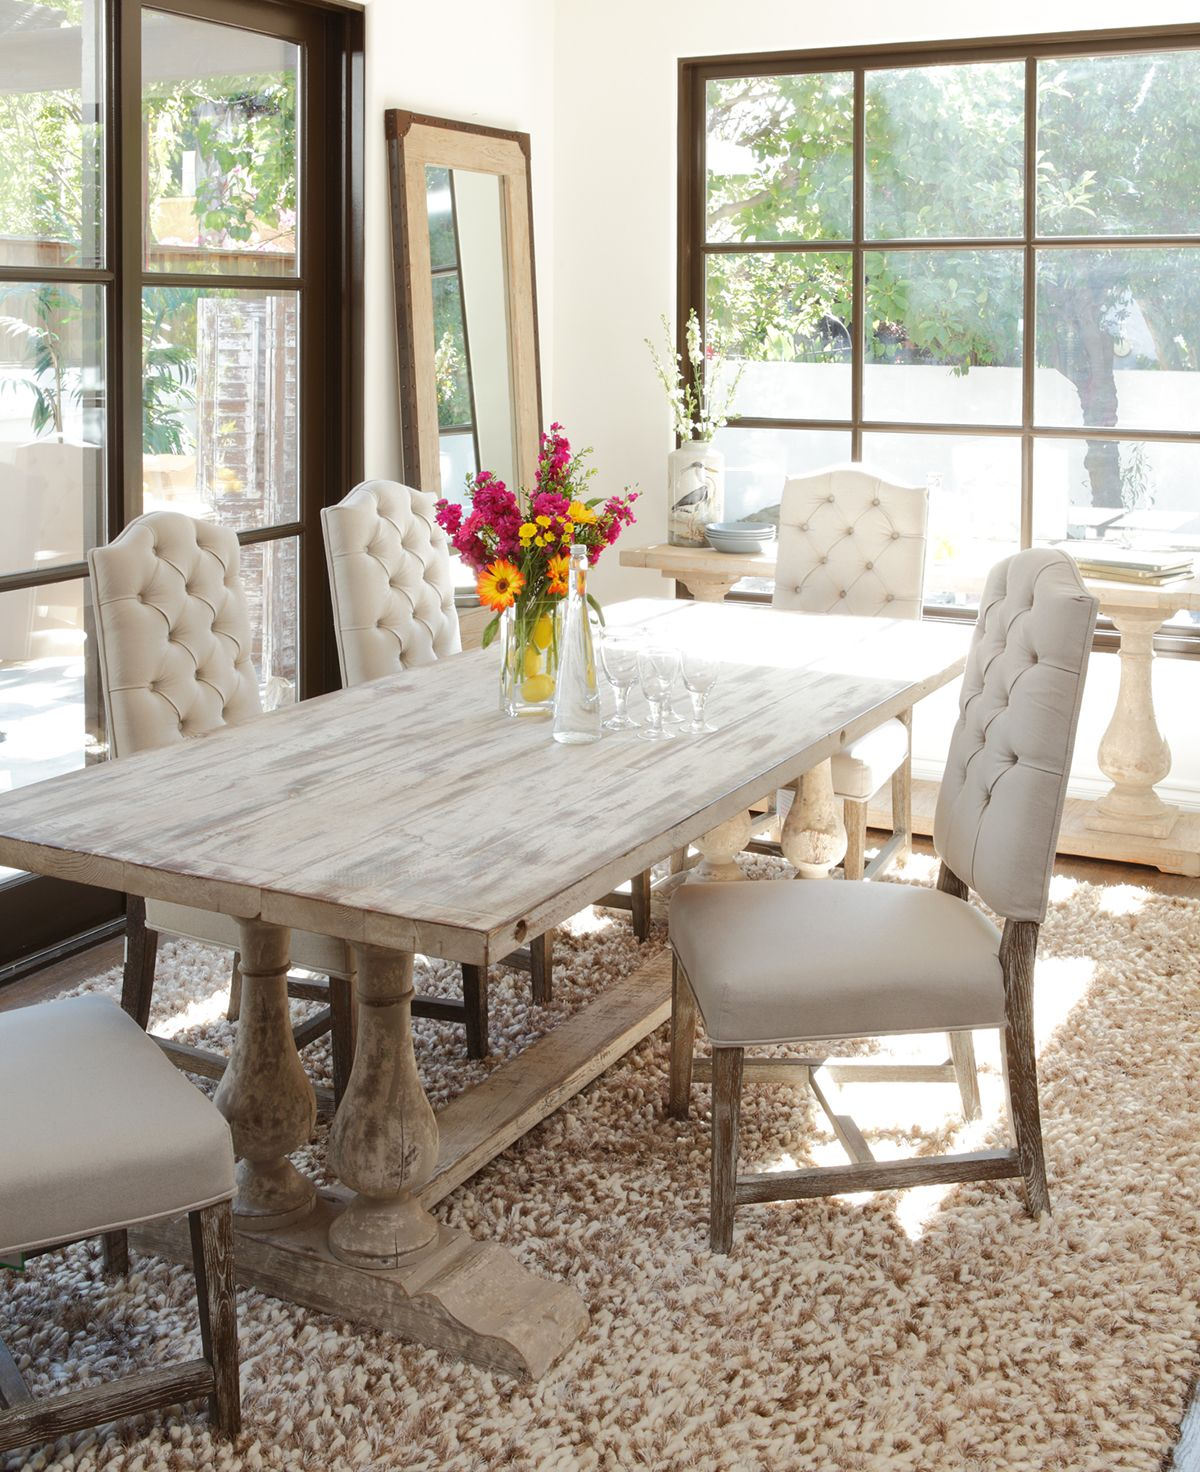 Windsor Dining Table Crafted Of Reclaimed Distressed Pine In An Antiqued White Finish Topped W Farmhouse Dining Room Table Chic Dining Room Dining Room Sets